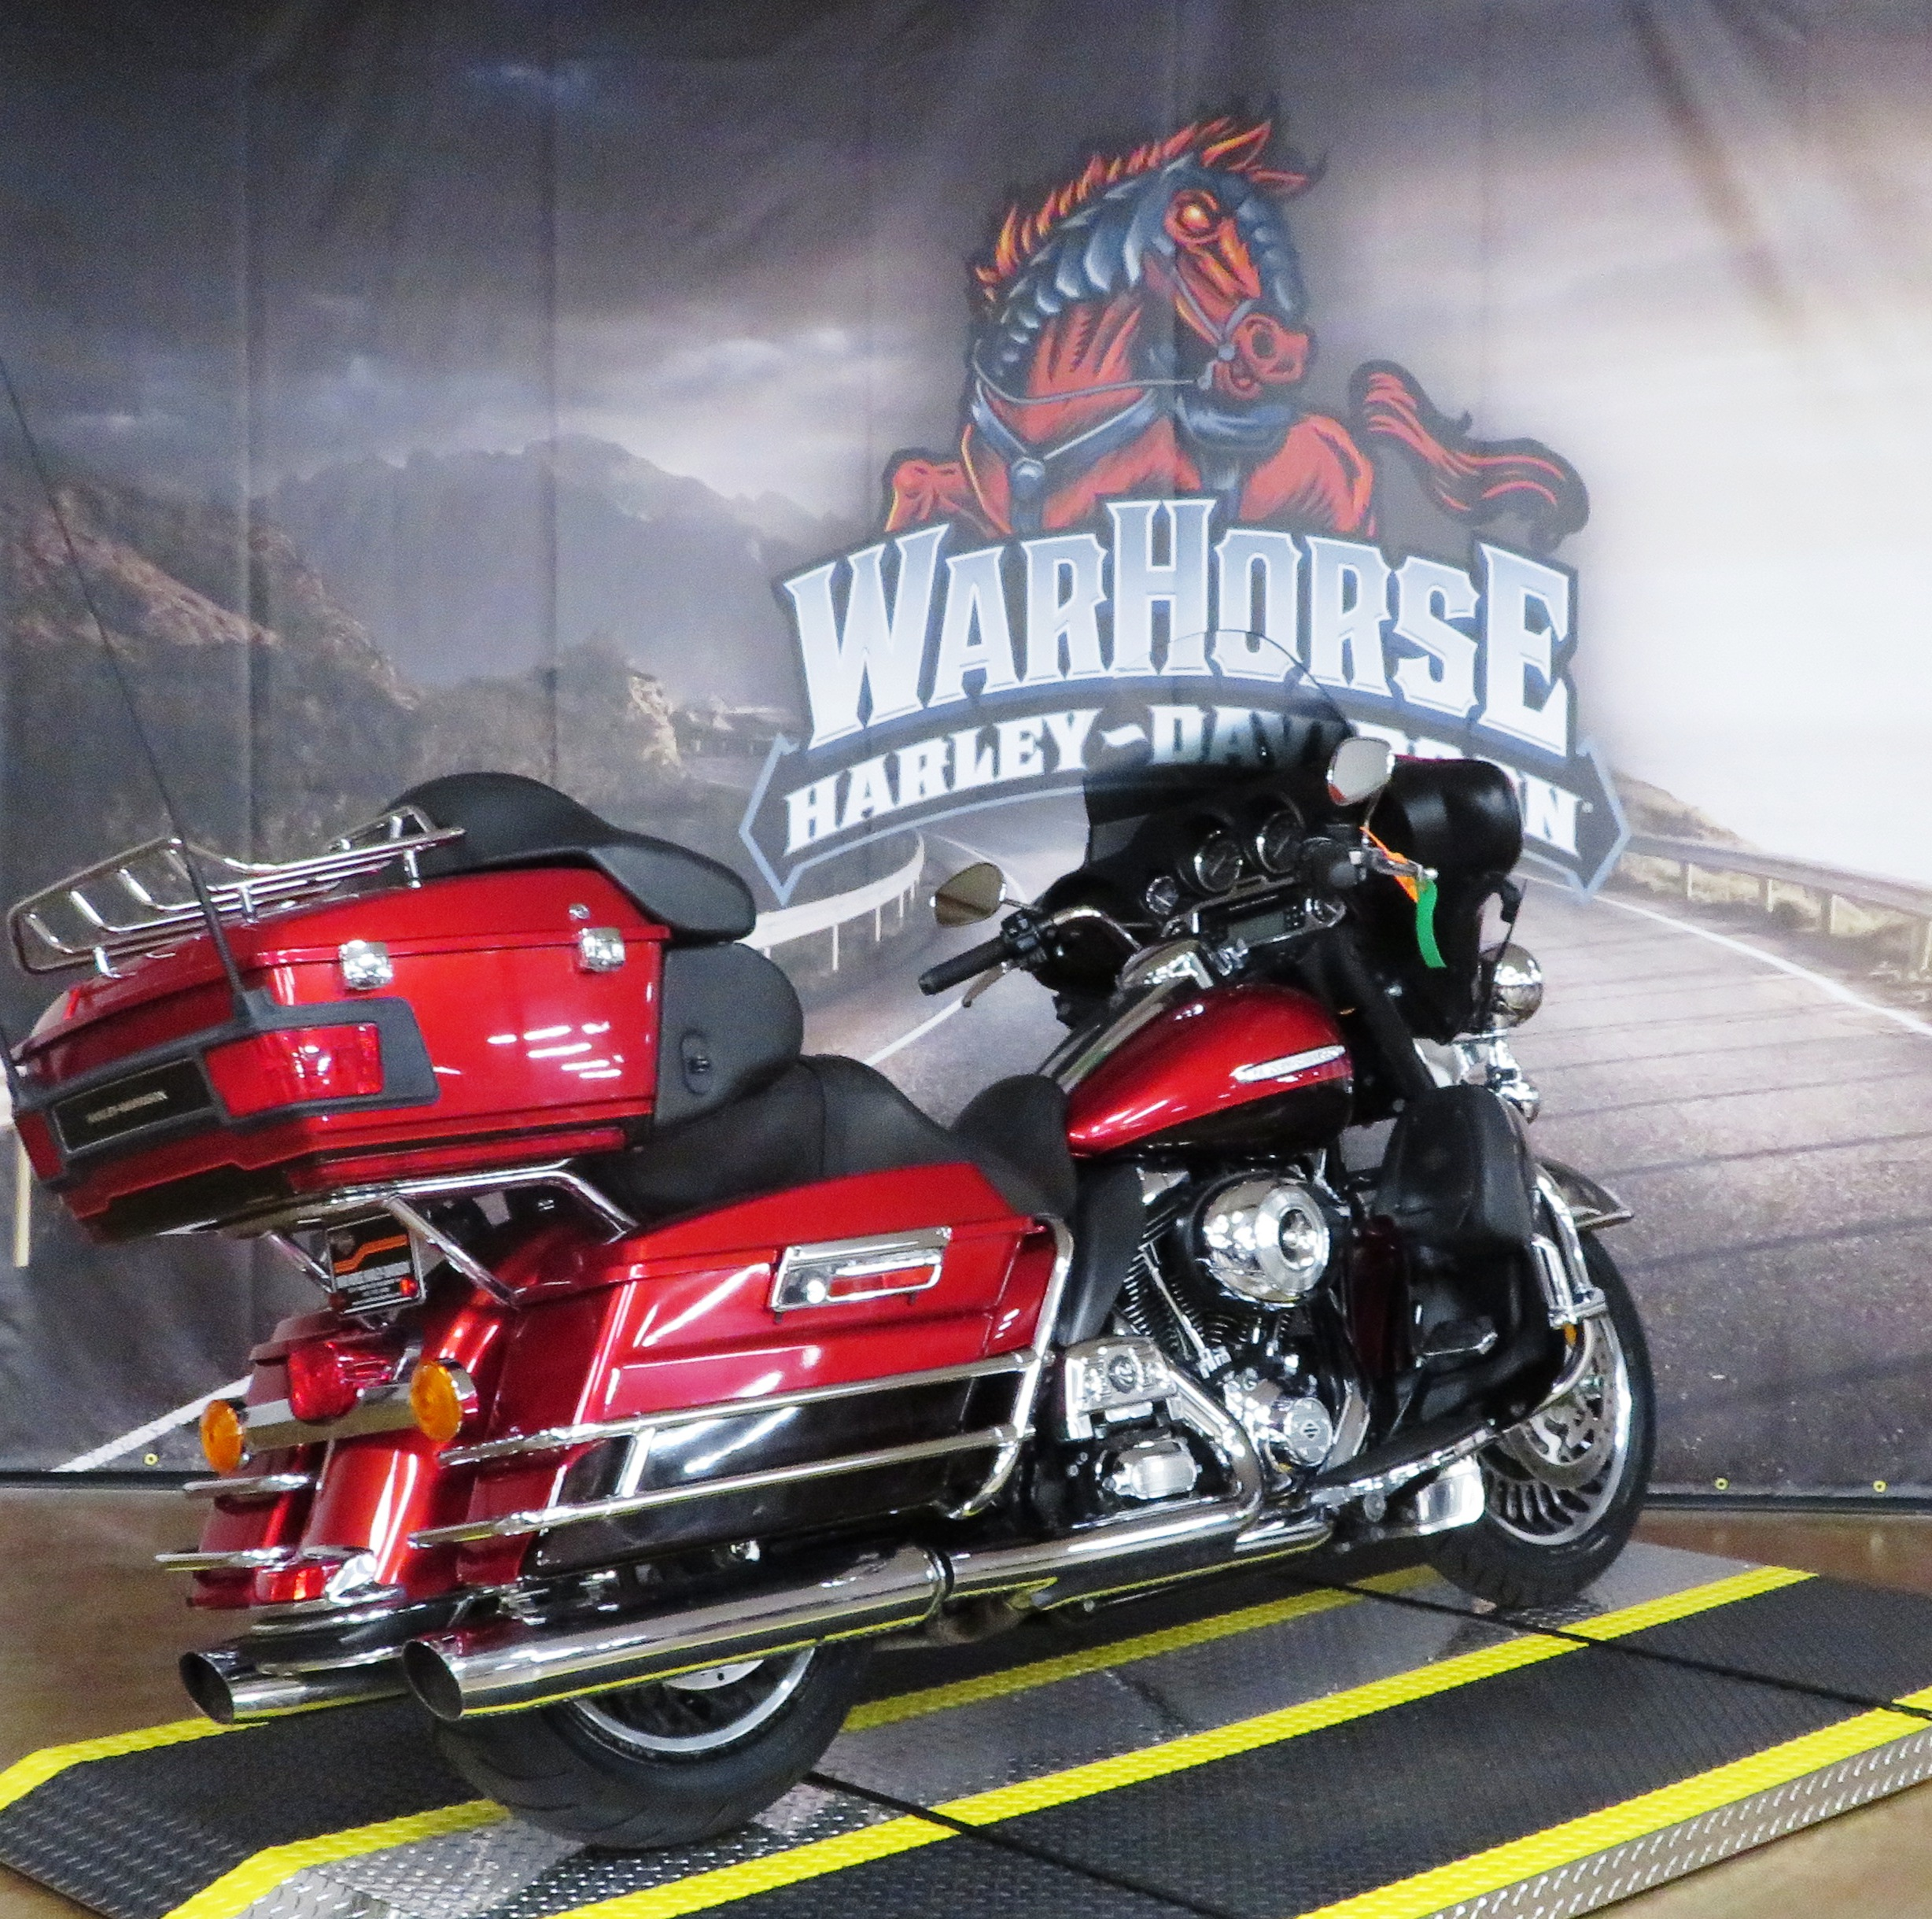 Pre-Owned 2012 Harley-Davidson Electra Glide Ultra Limited